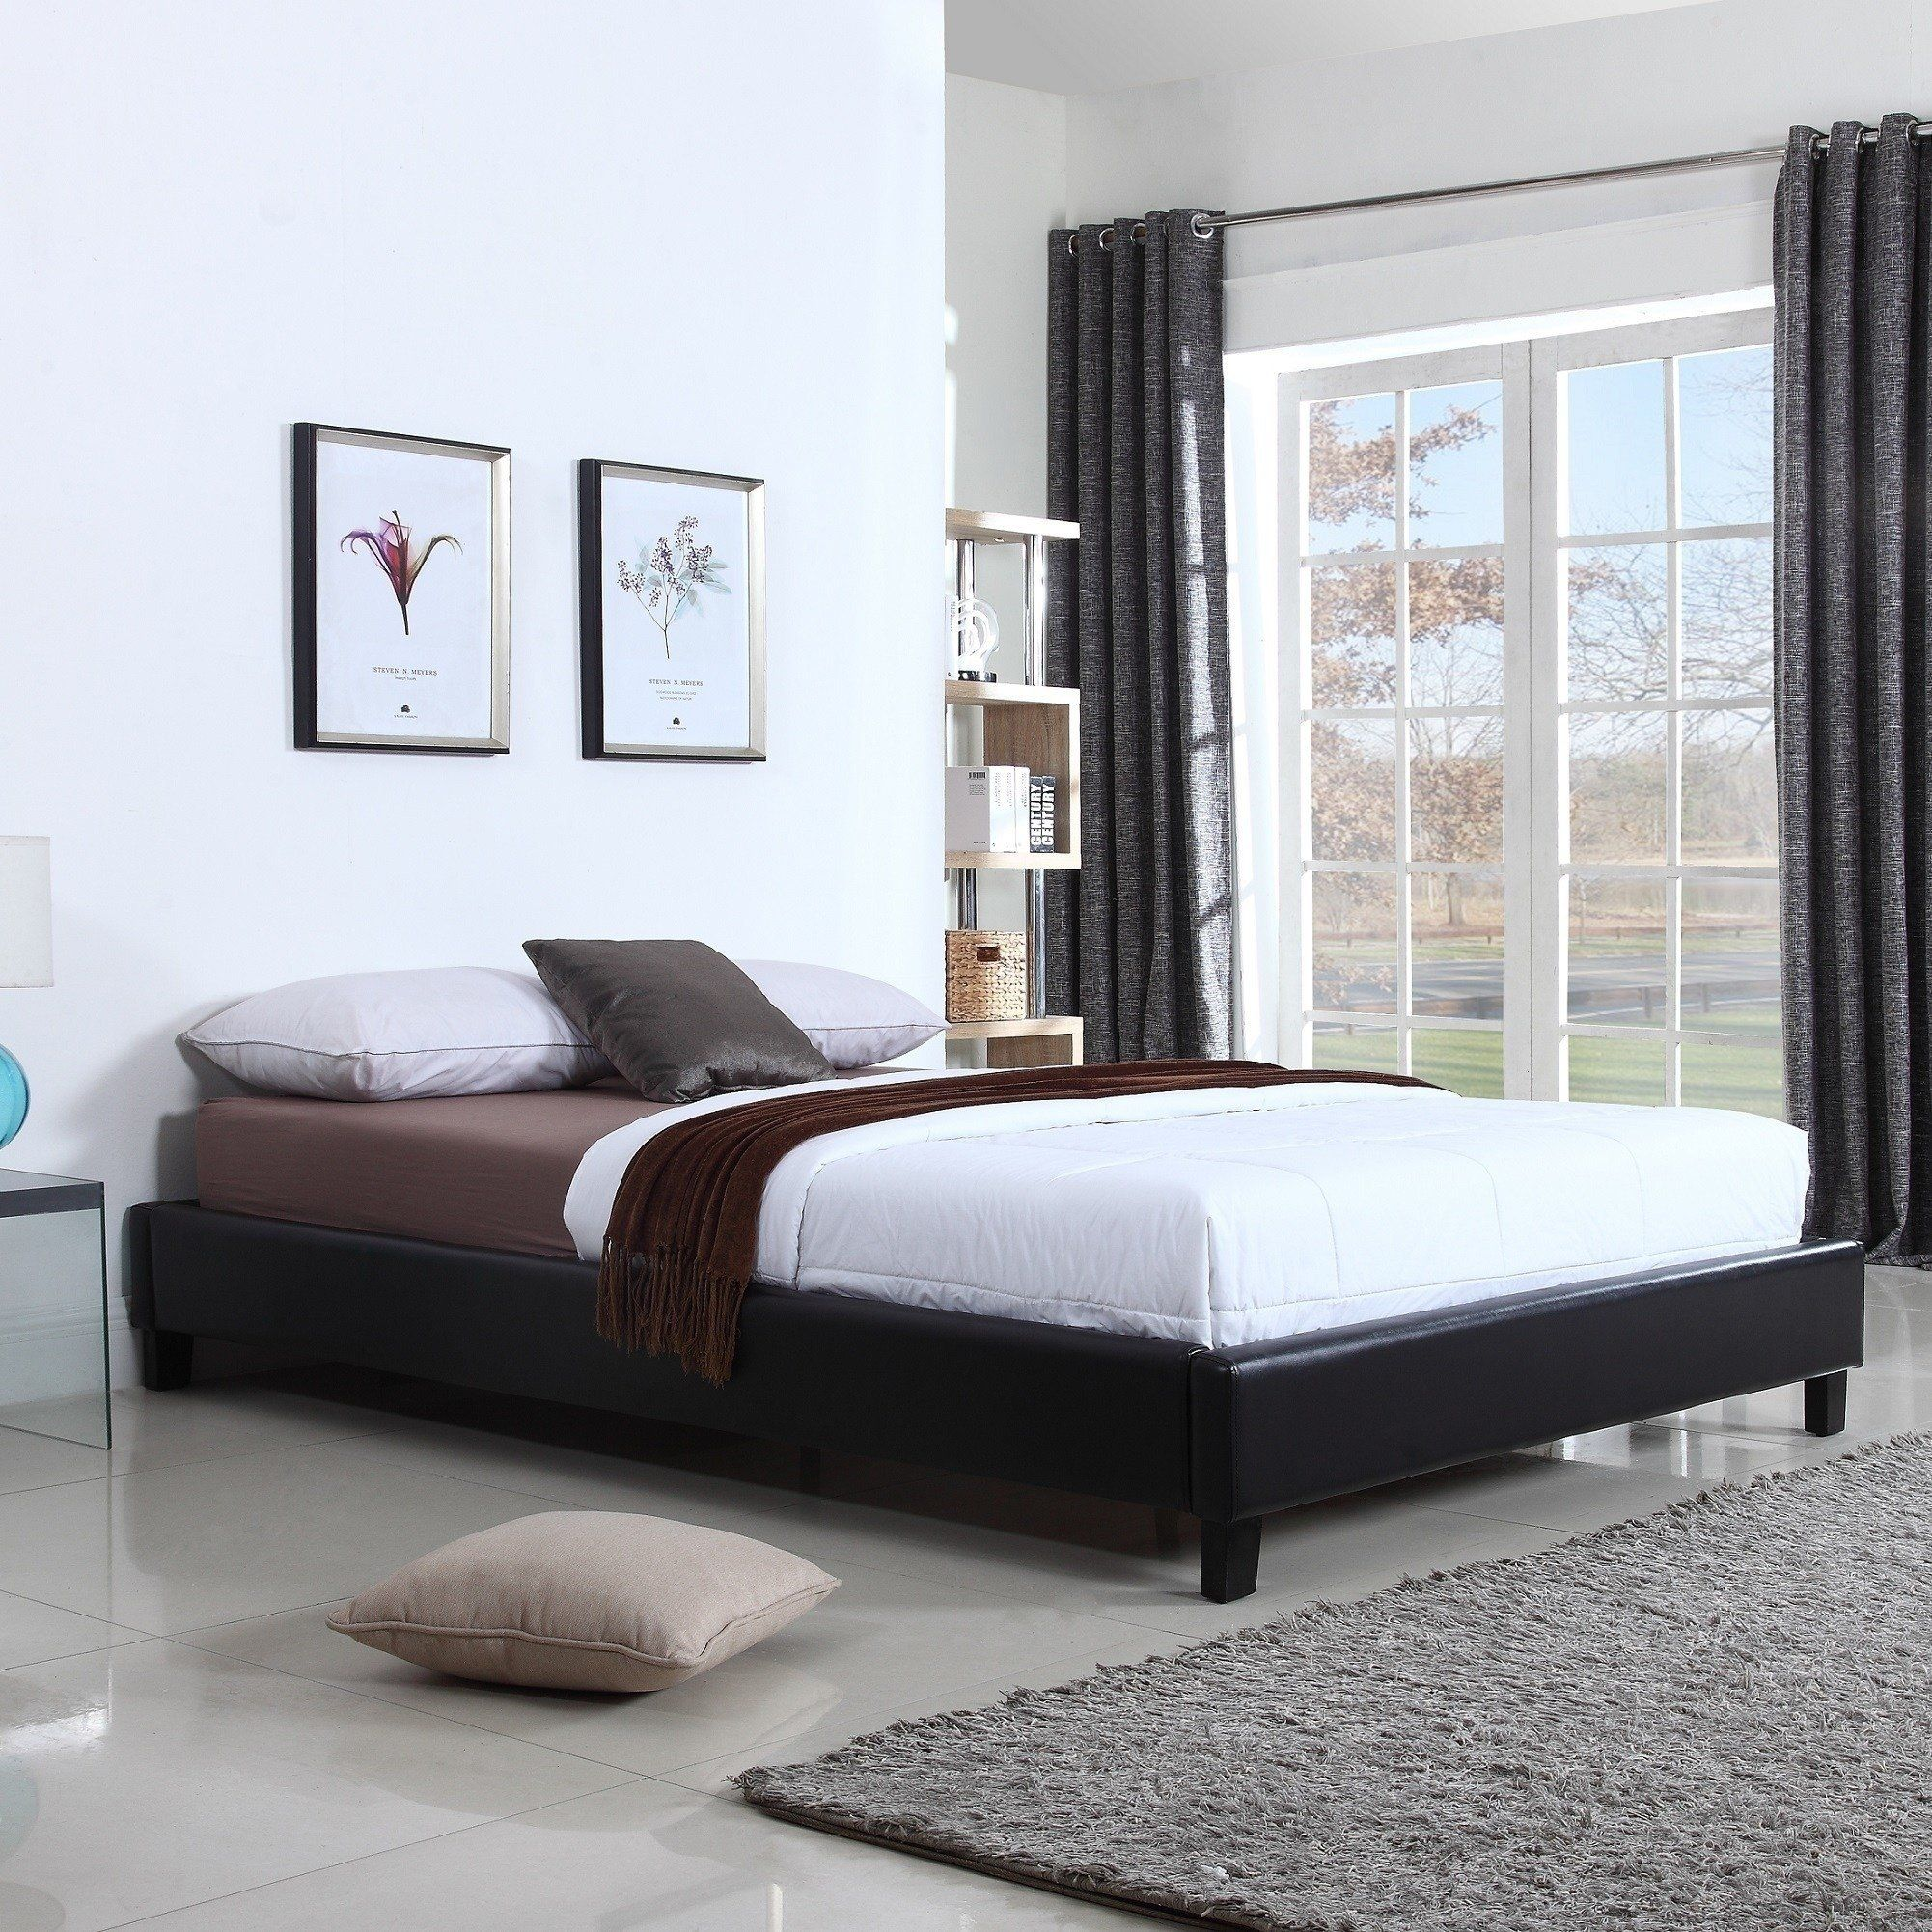 Hadwen Black Faux Leather Full/Queen Bed (Queen) Leather